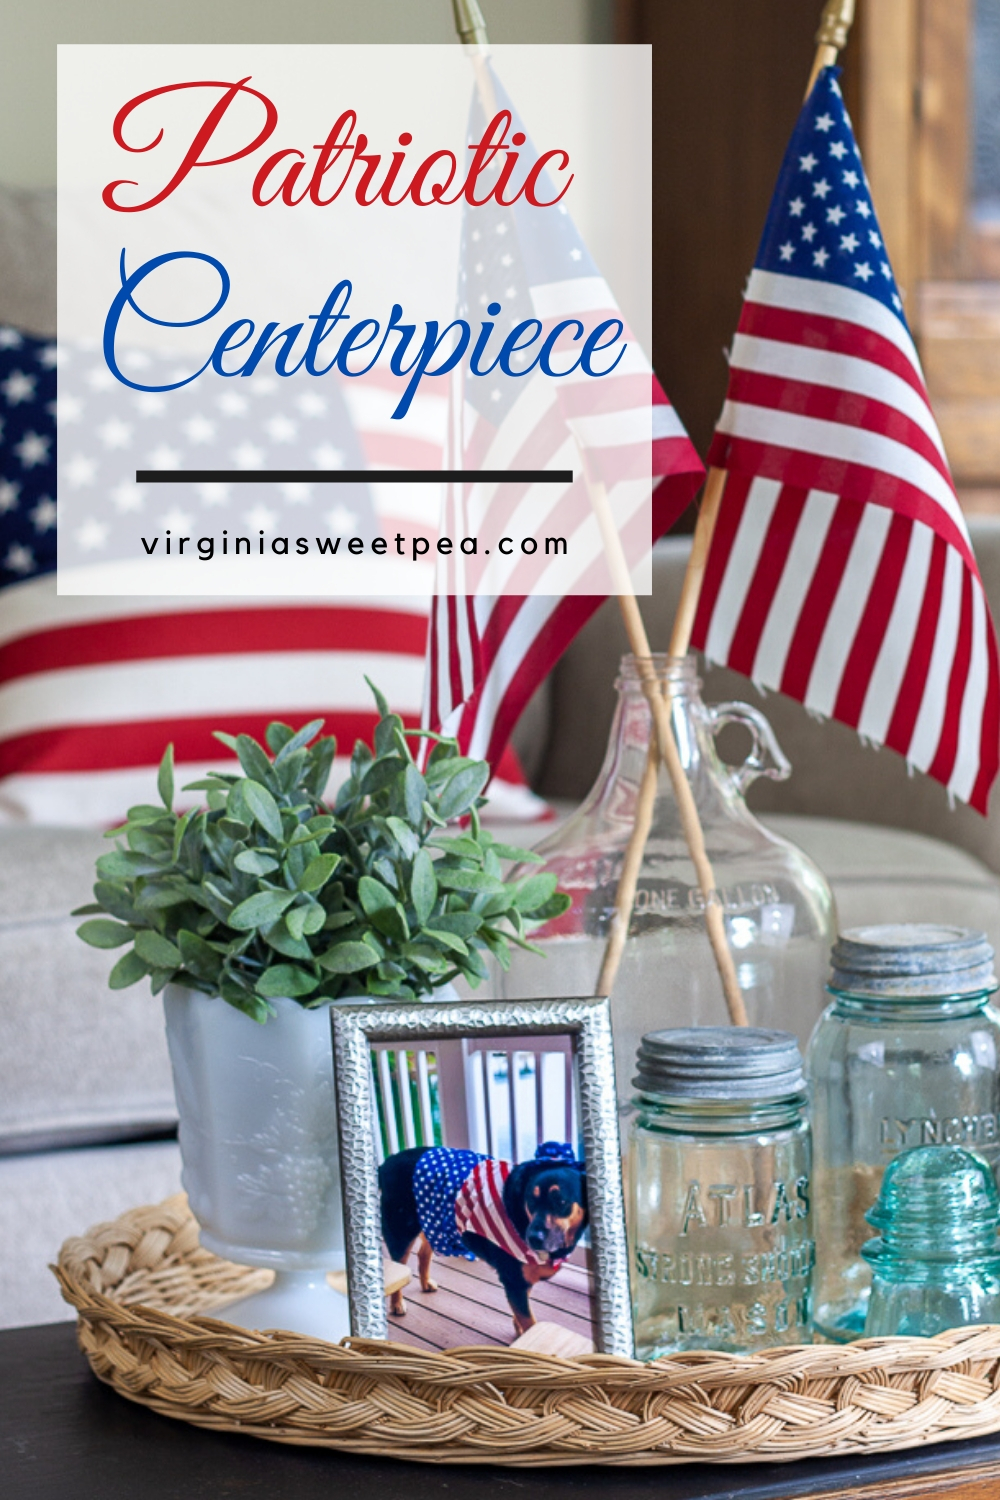 Patriotic Centerpiece - Celebrate patriotic holidays with a patriotic centerpiece that is easy to assemble.  Gather home decor supplies and create this look for your home.  #patriotic #patrioticcenterpiece #patrioticvignette #patrioticdecor #4thofjulydecor #4thofjulycenterpiece #virginiasweetpea #shermanskulina via @spaula